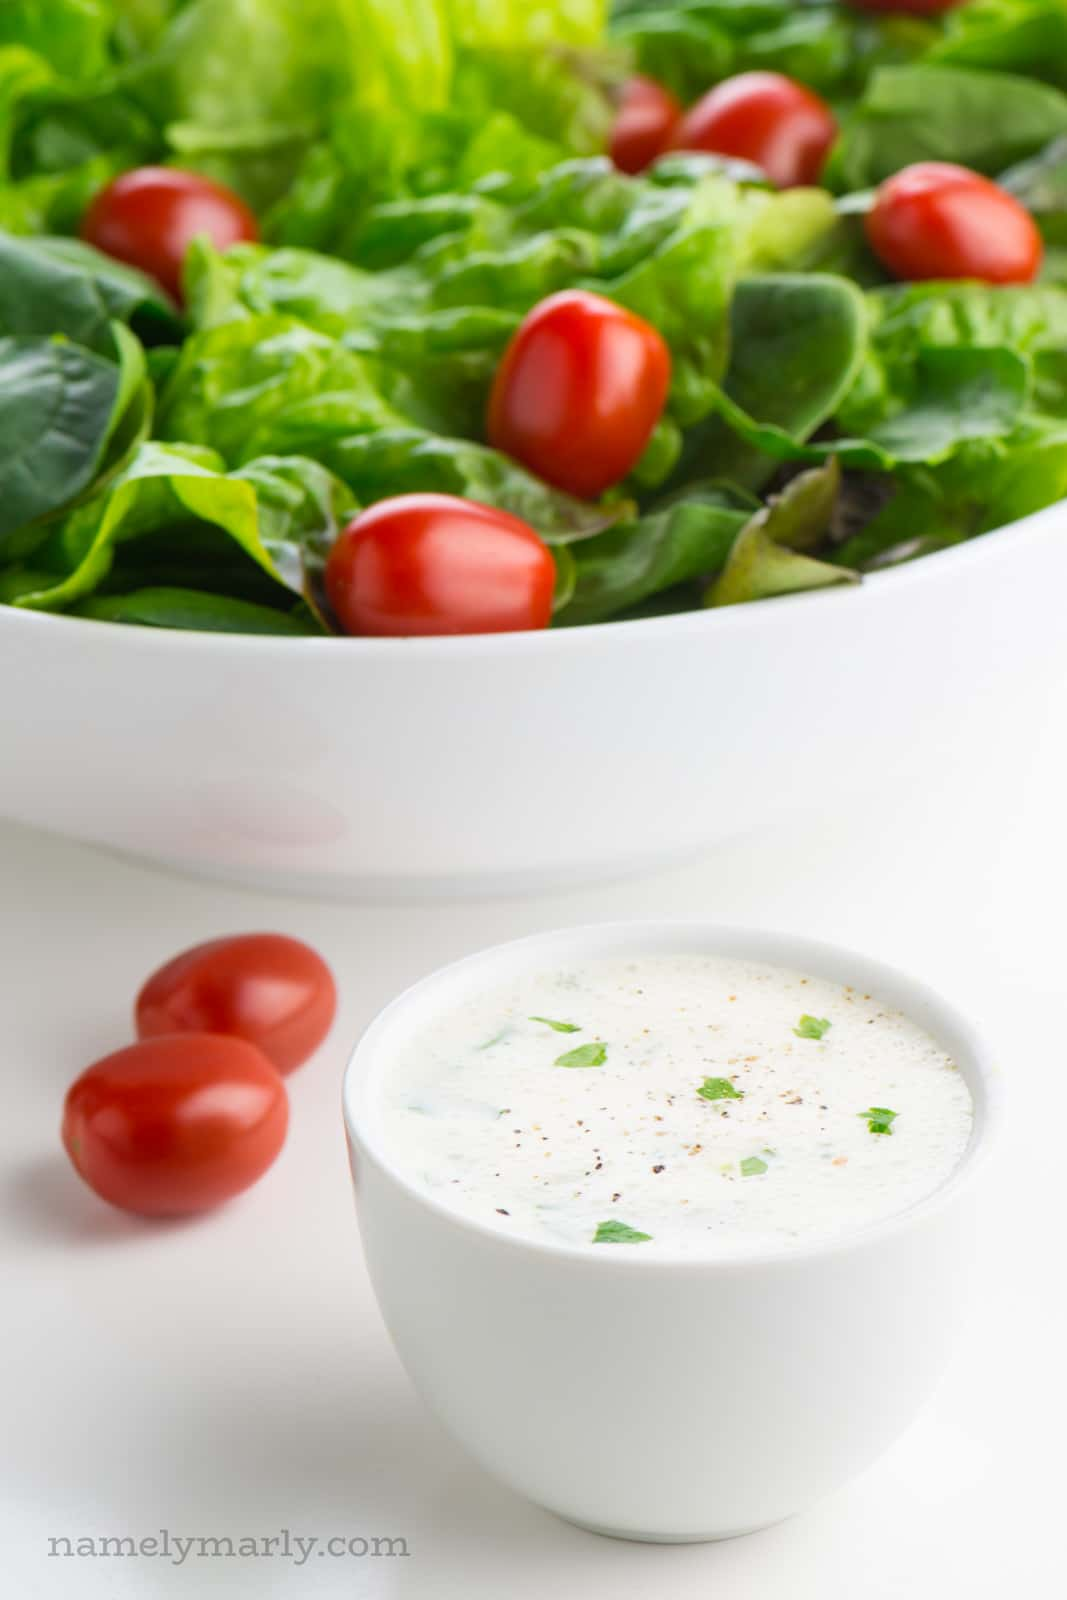 A bowl of vegan ranch dressing sits in front of a salad bowl full of greens and cherry tomatoes.